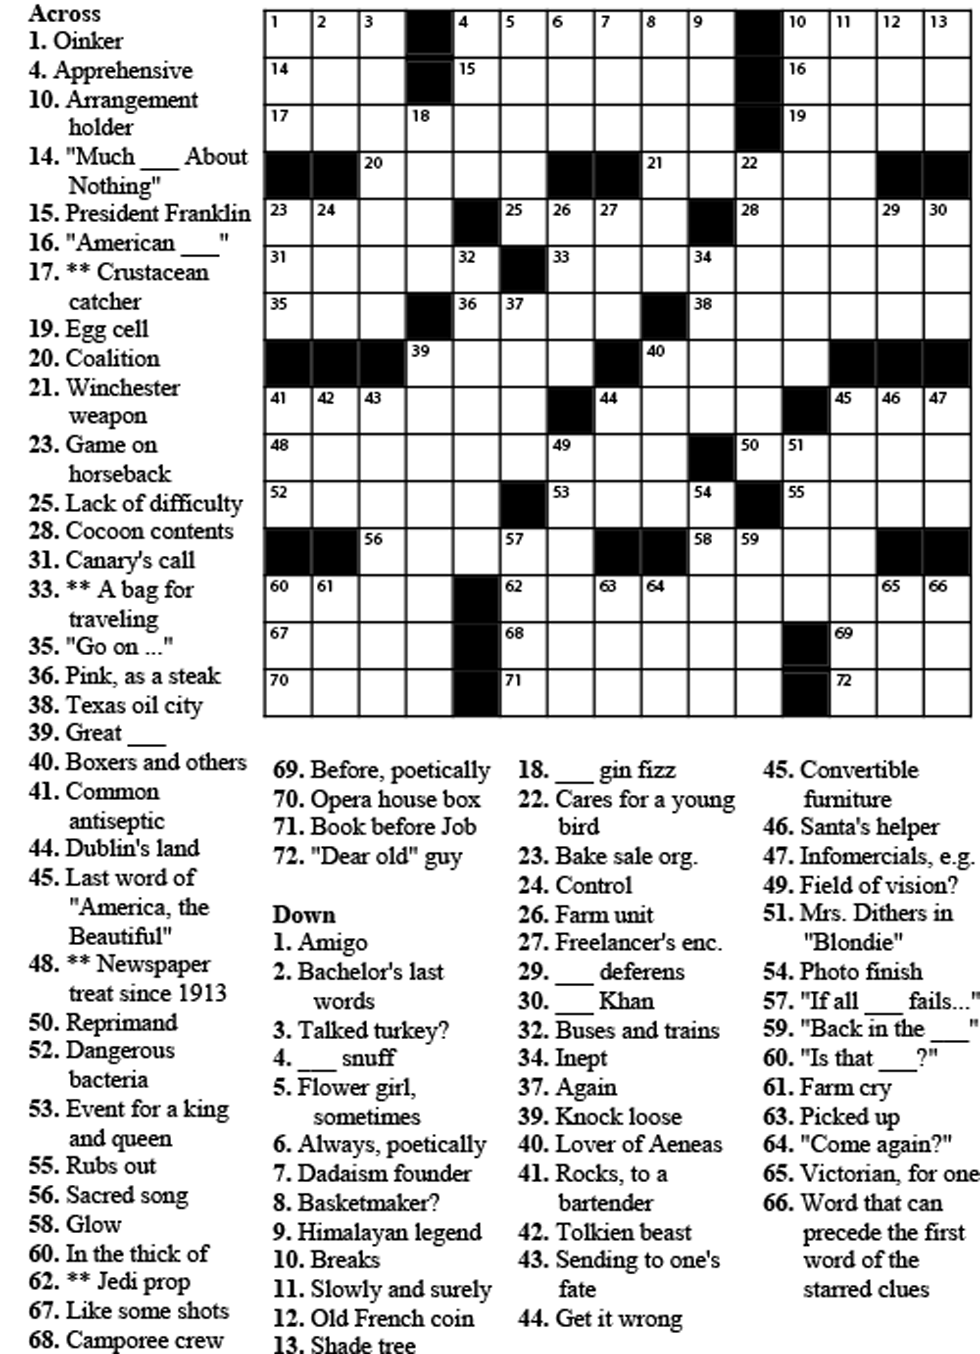 635-crossword.png